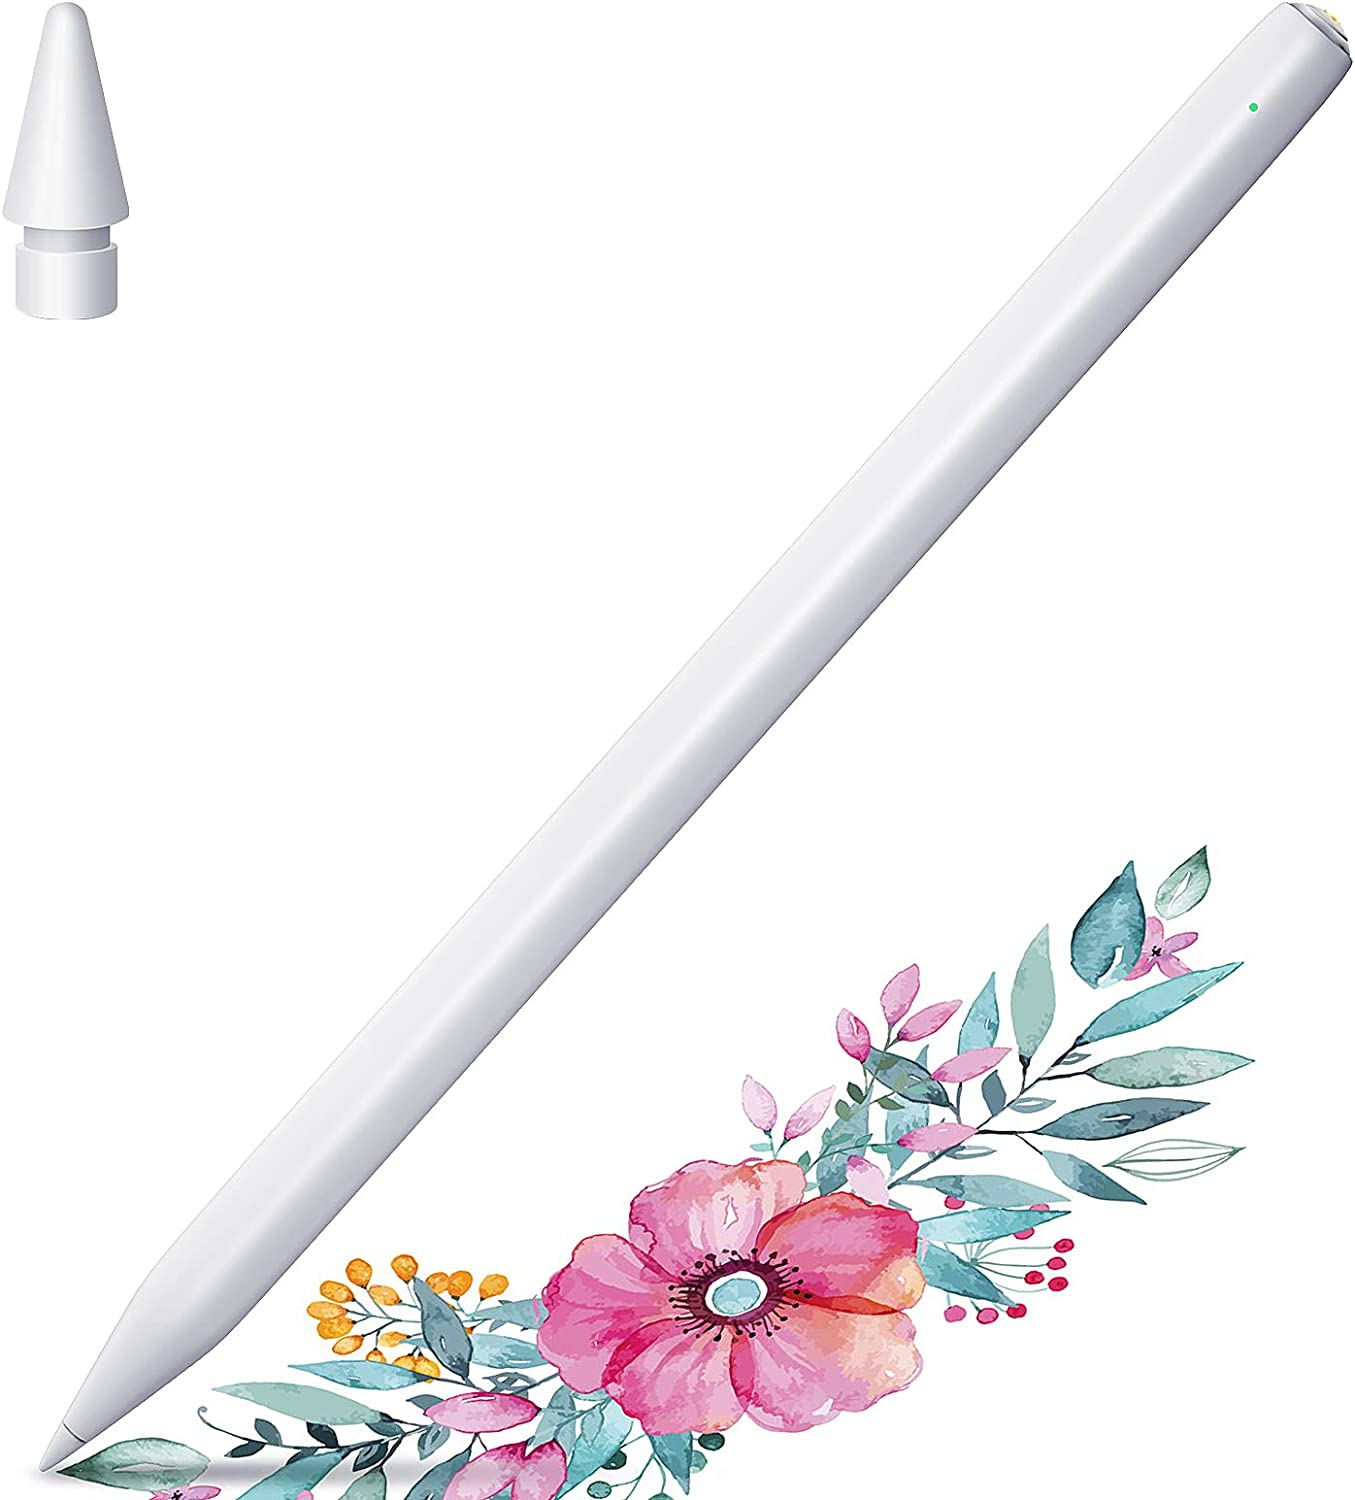 Stylus Pen for iPad, StylusHome Active Stylus for Apple iPad (2018 and Later), Palm Rejection Magnetic Adsorption for iPad Pro 11/12.9 Inch iPad 6/7/8th Gen iPad Air 3rd/4th Gen iPad Mini 5th Gen